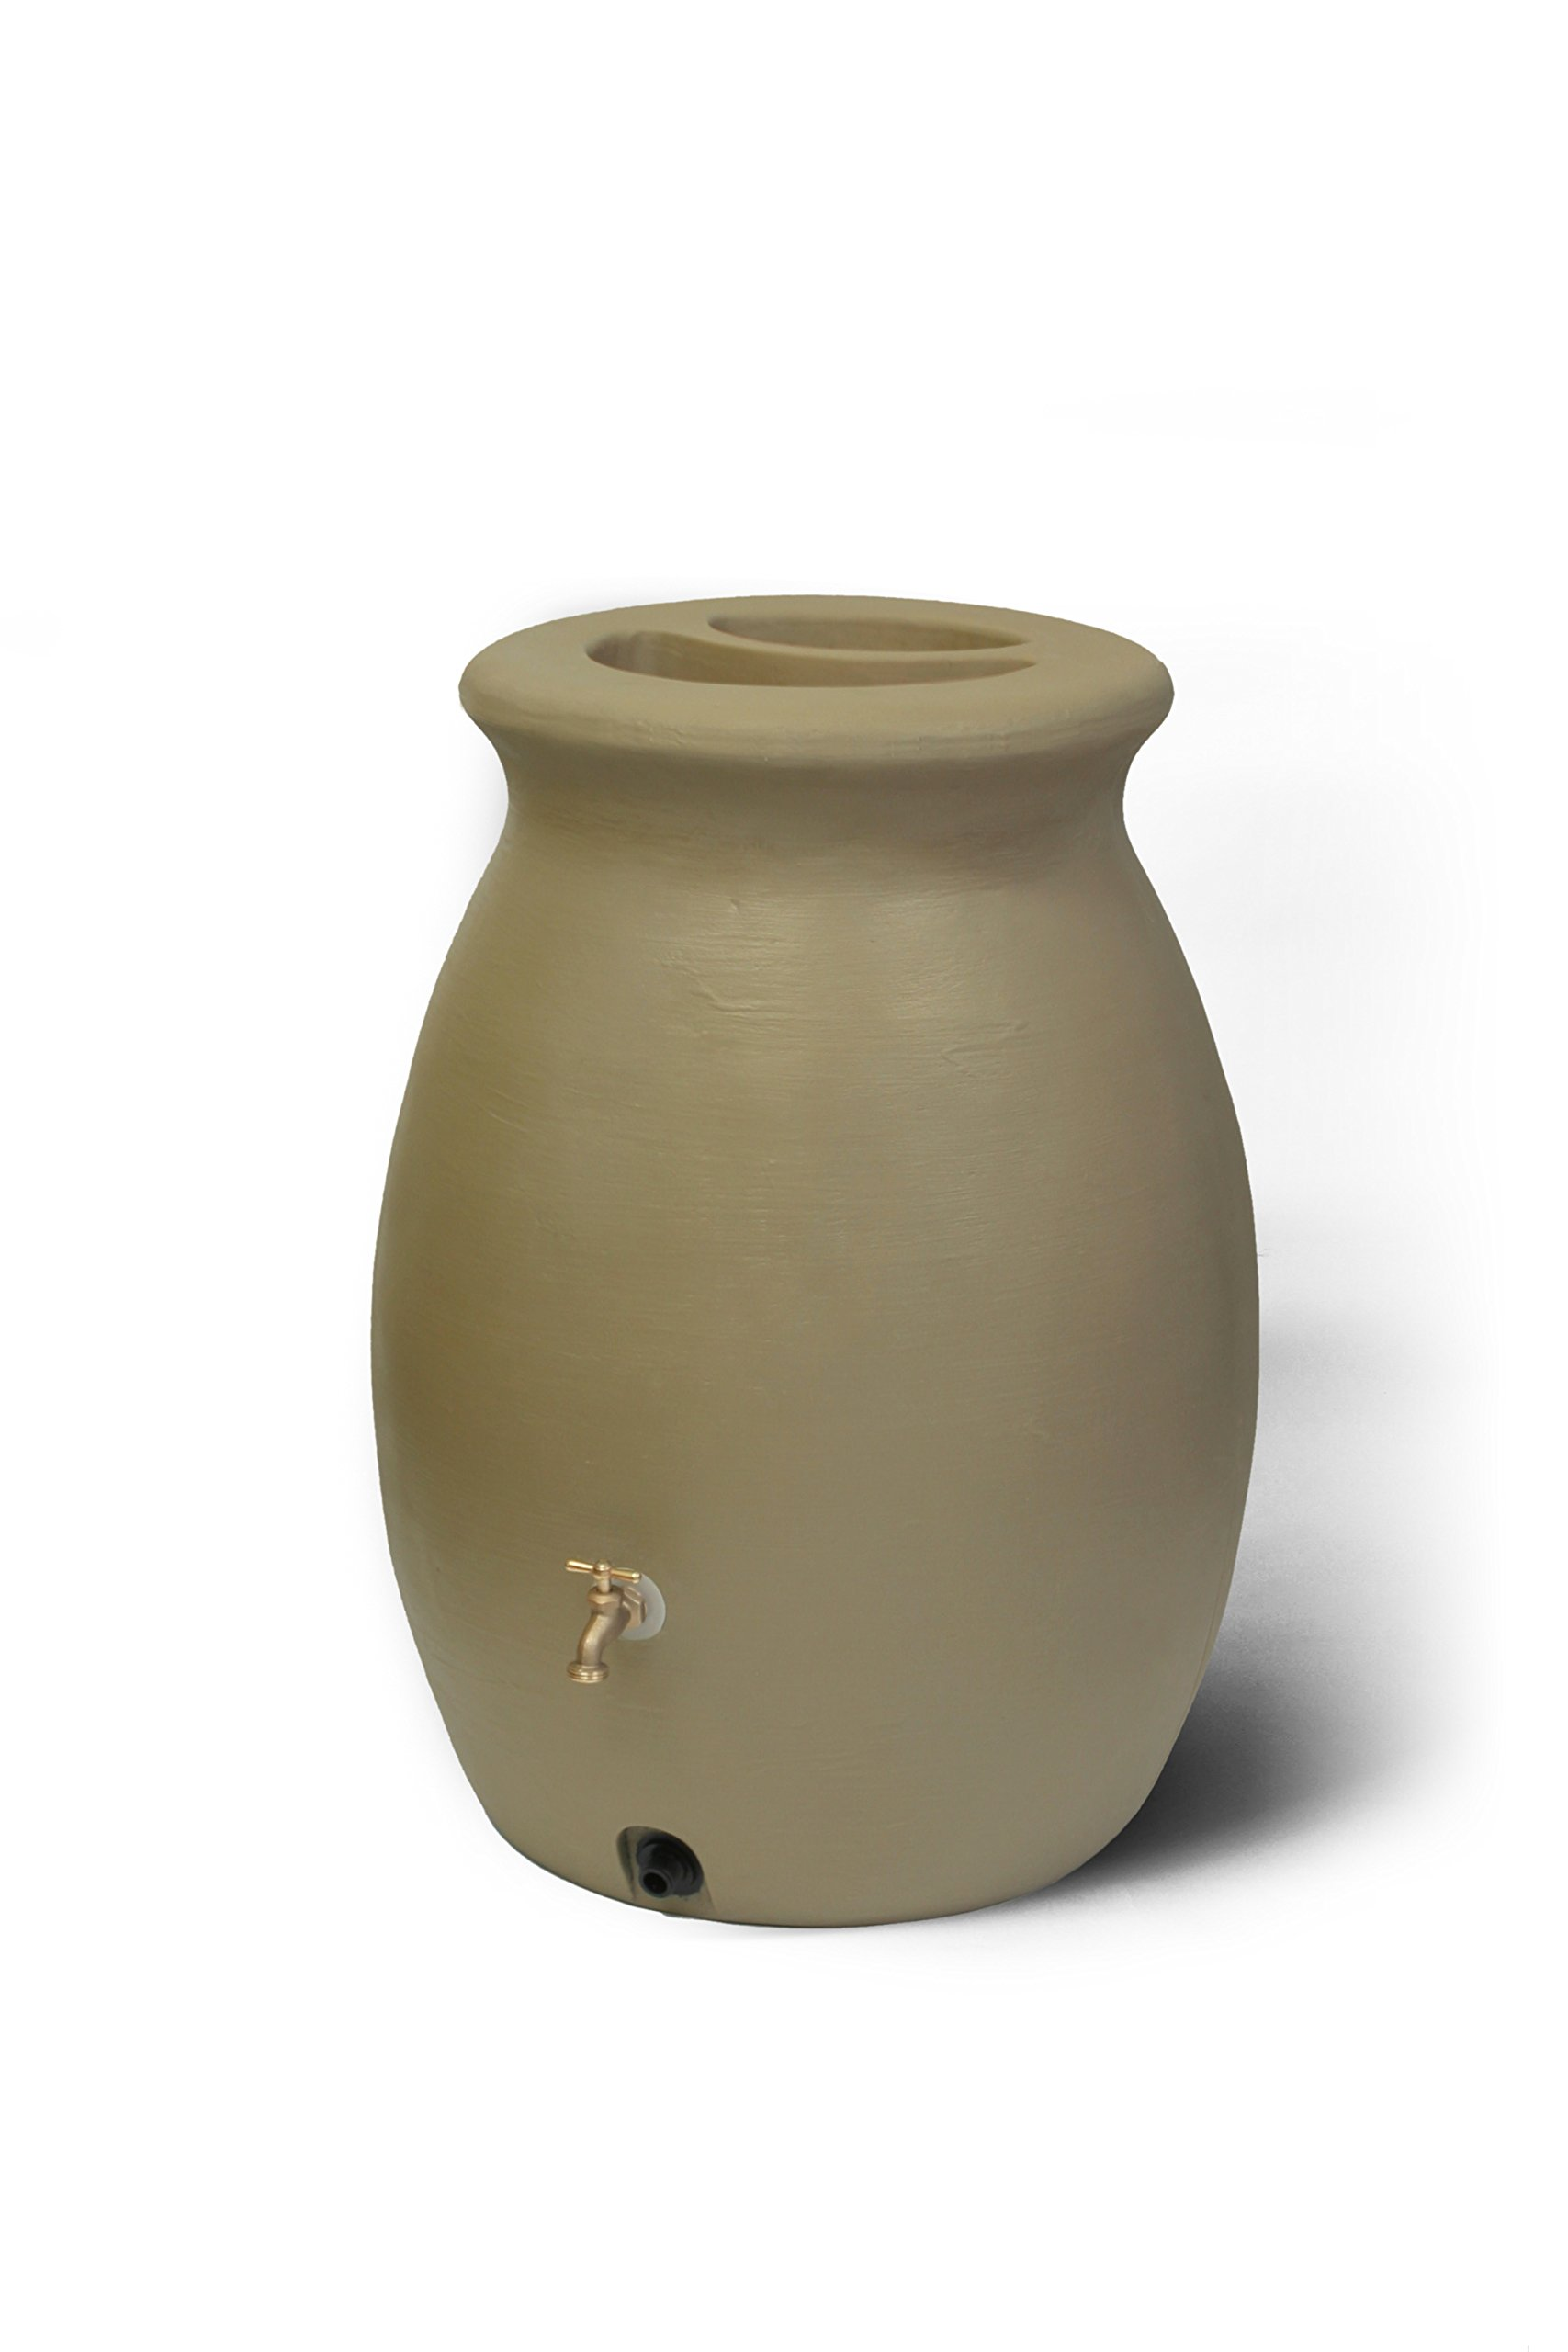 Algreen 81213  Products Castilla Rain Barrel 50-Gallon, Sandalwood by Algreen